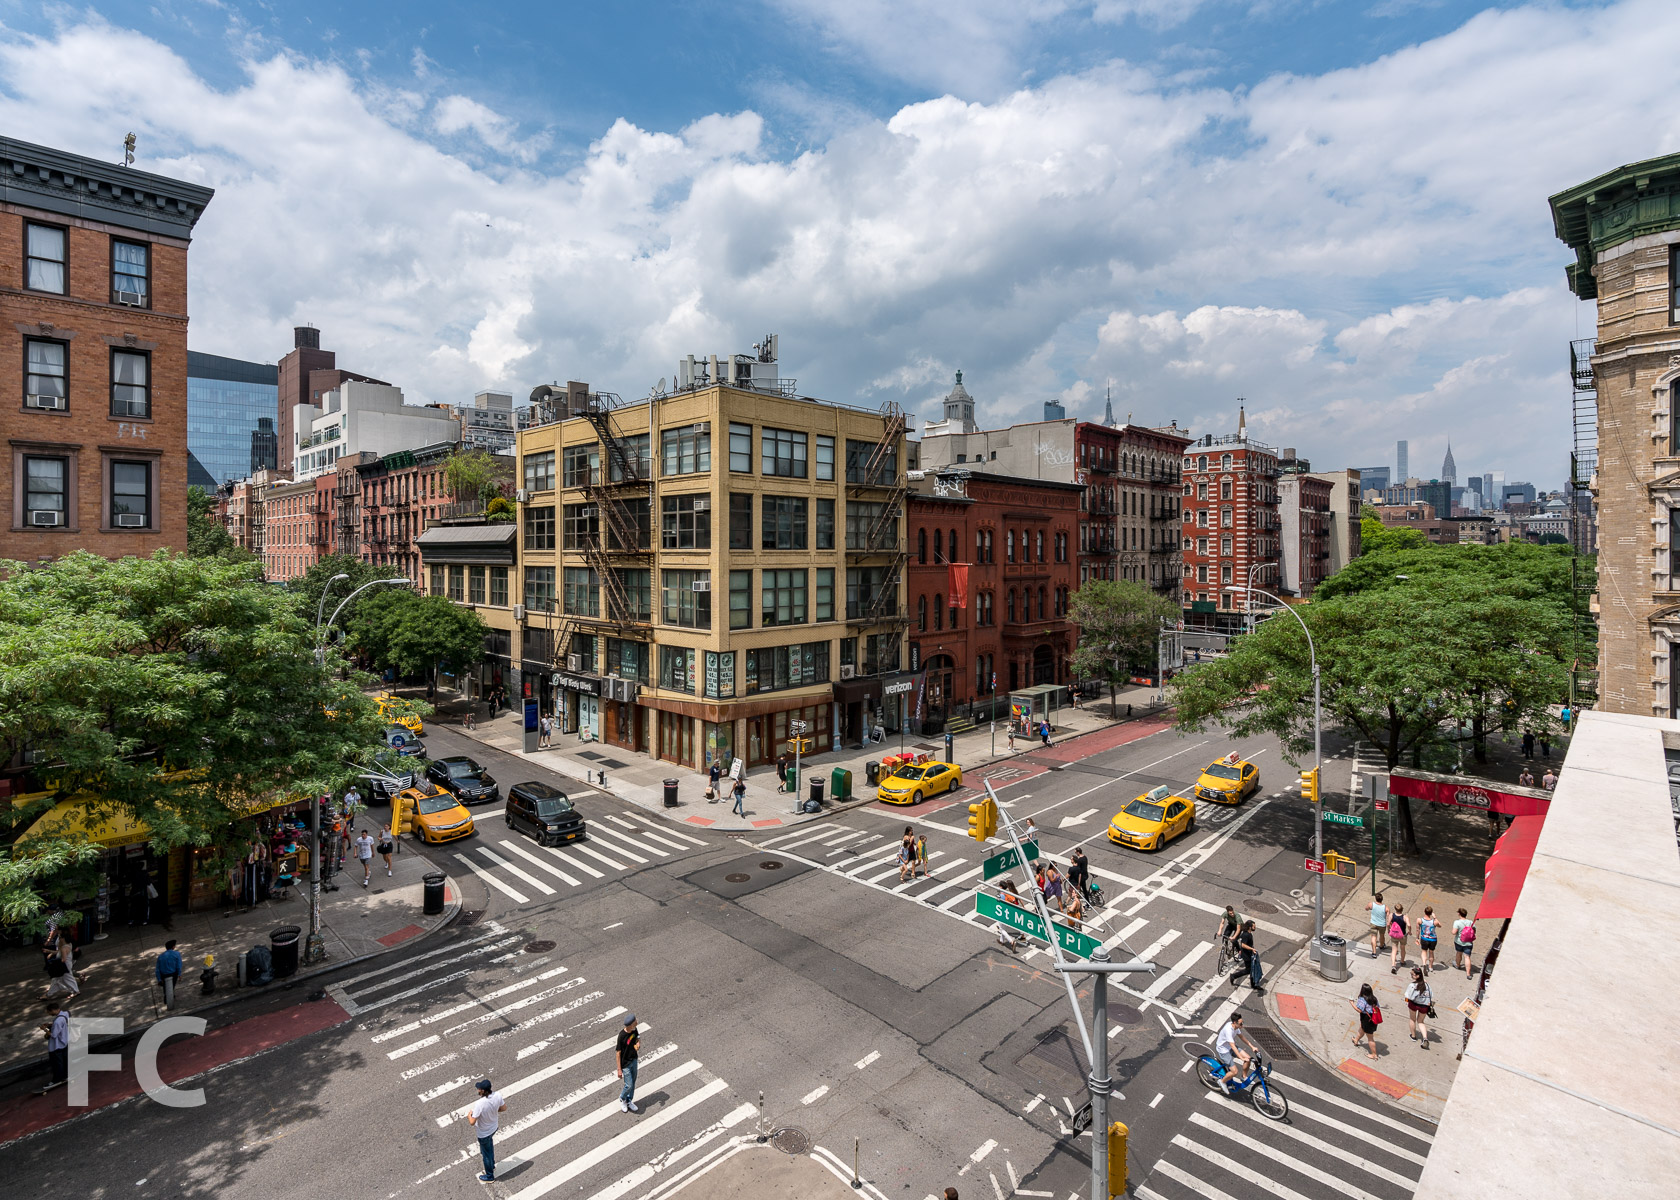 View of the corner of 2nd Avenue and St Marks Place from the rooftop space.